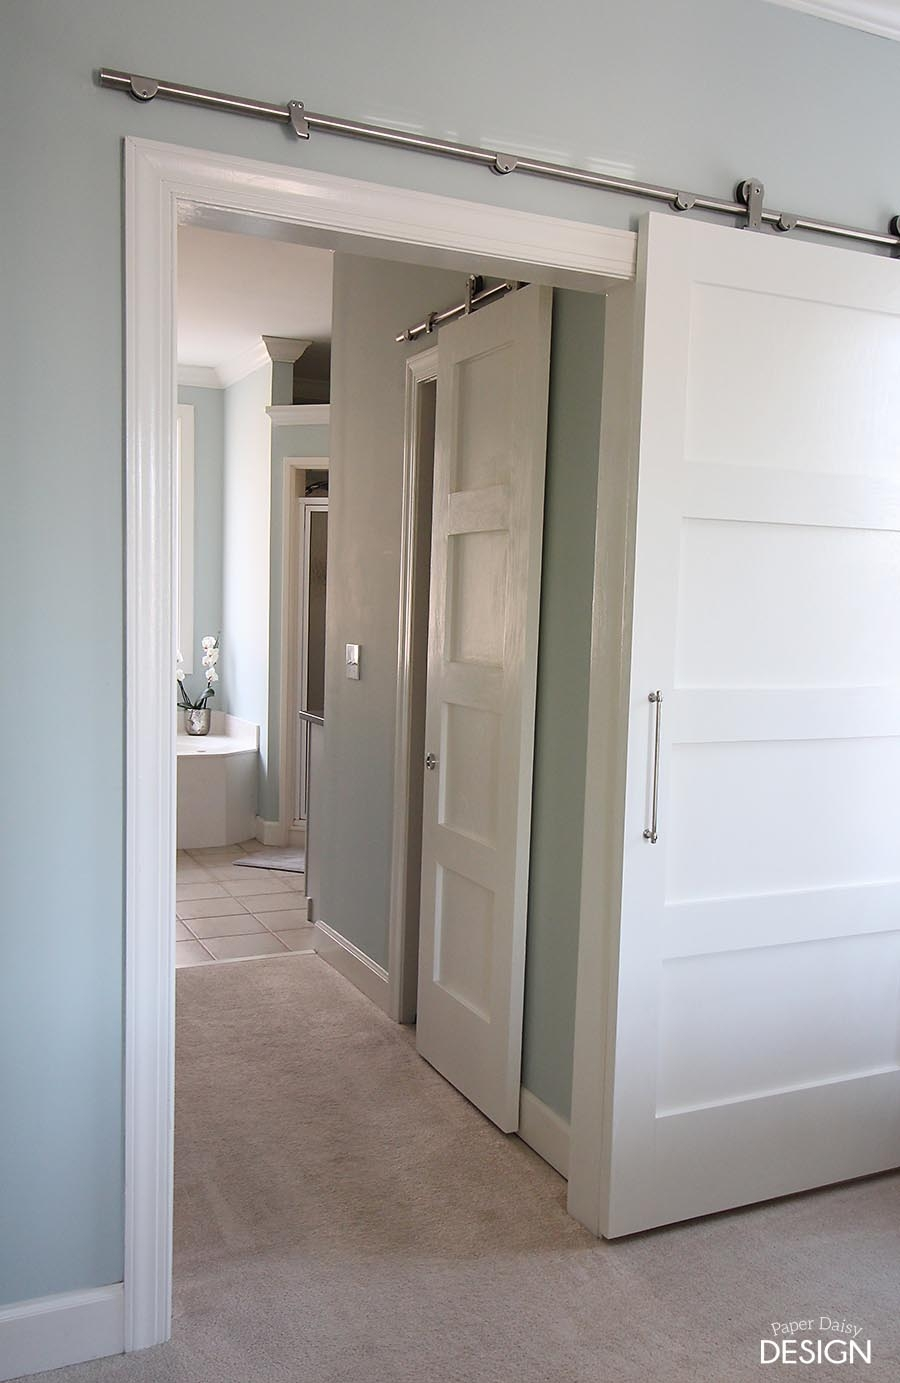 Barn Door For Hall Bathroommodern barn doors an easy solution to awkward entries